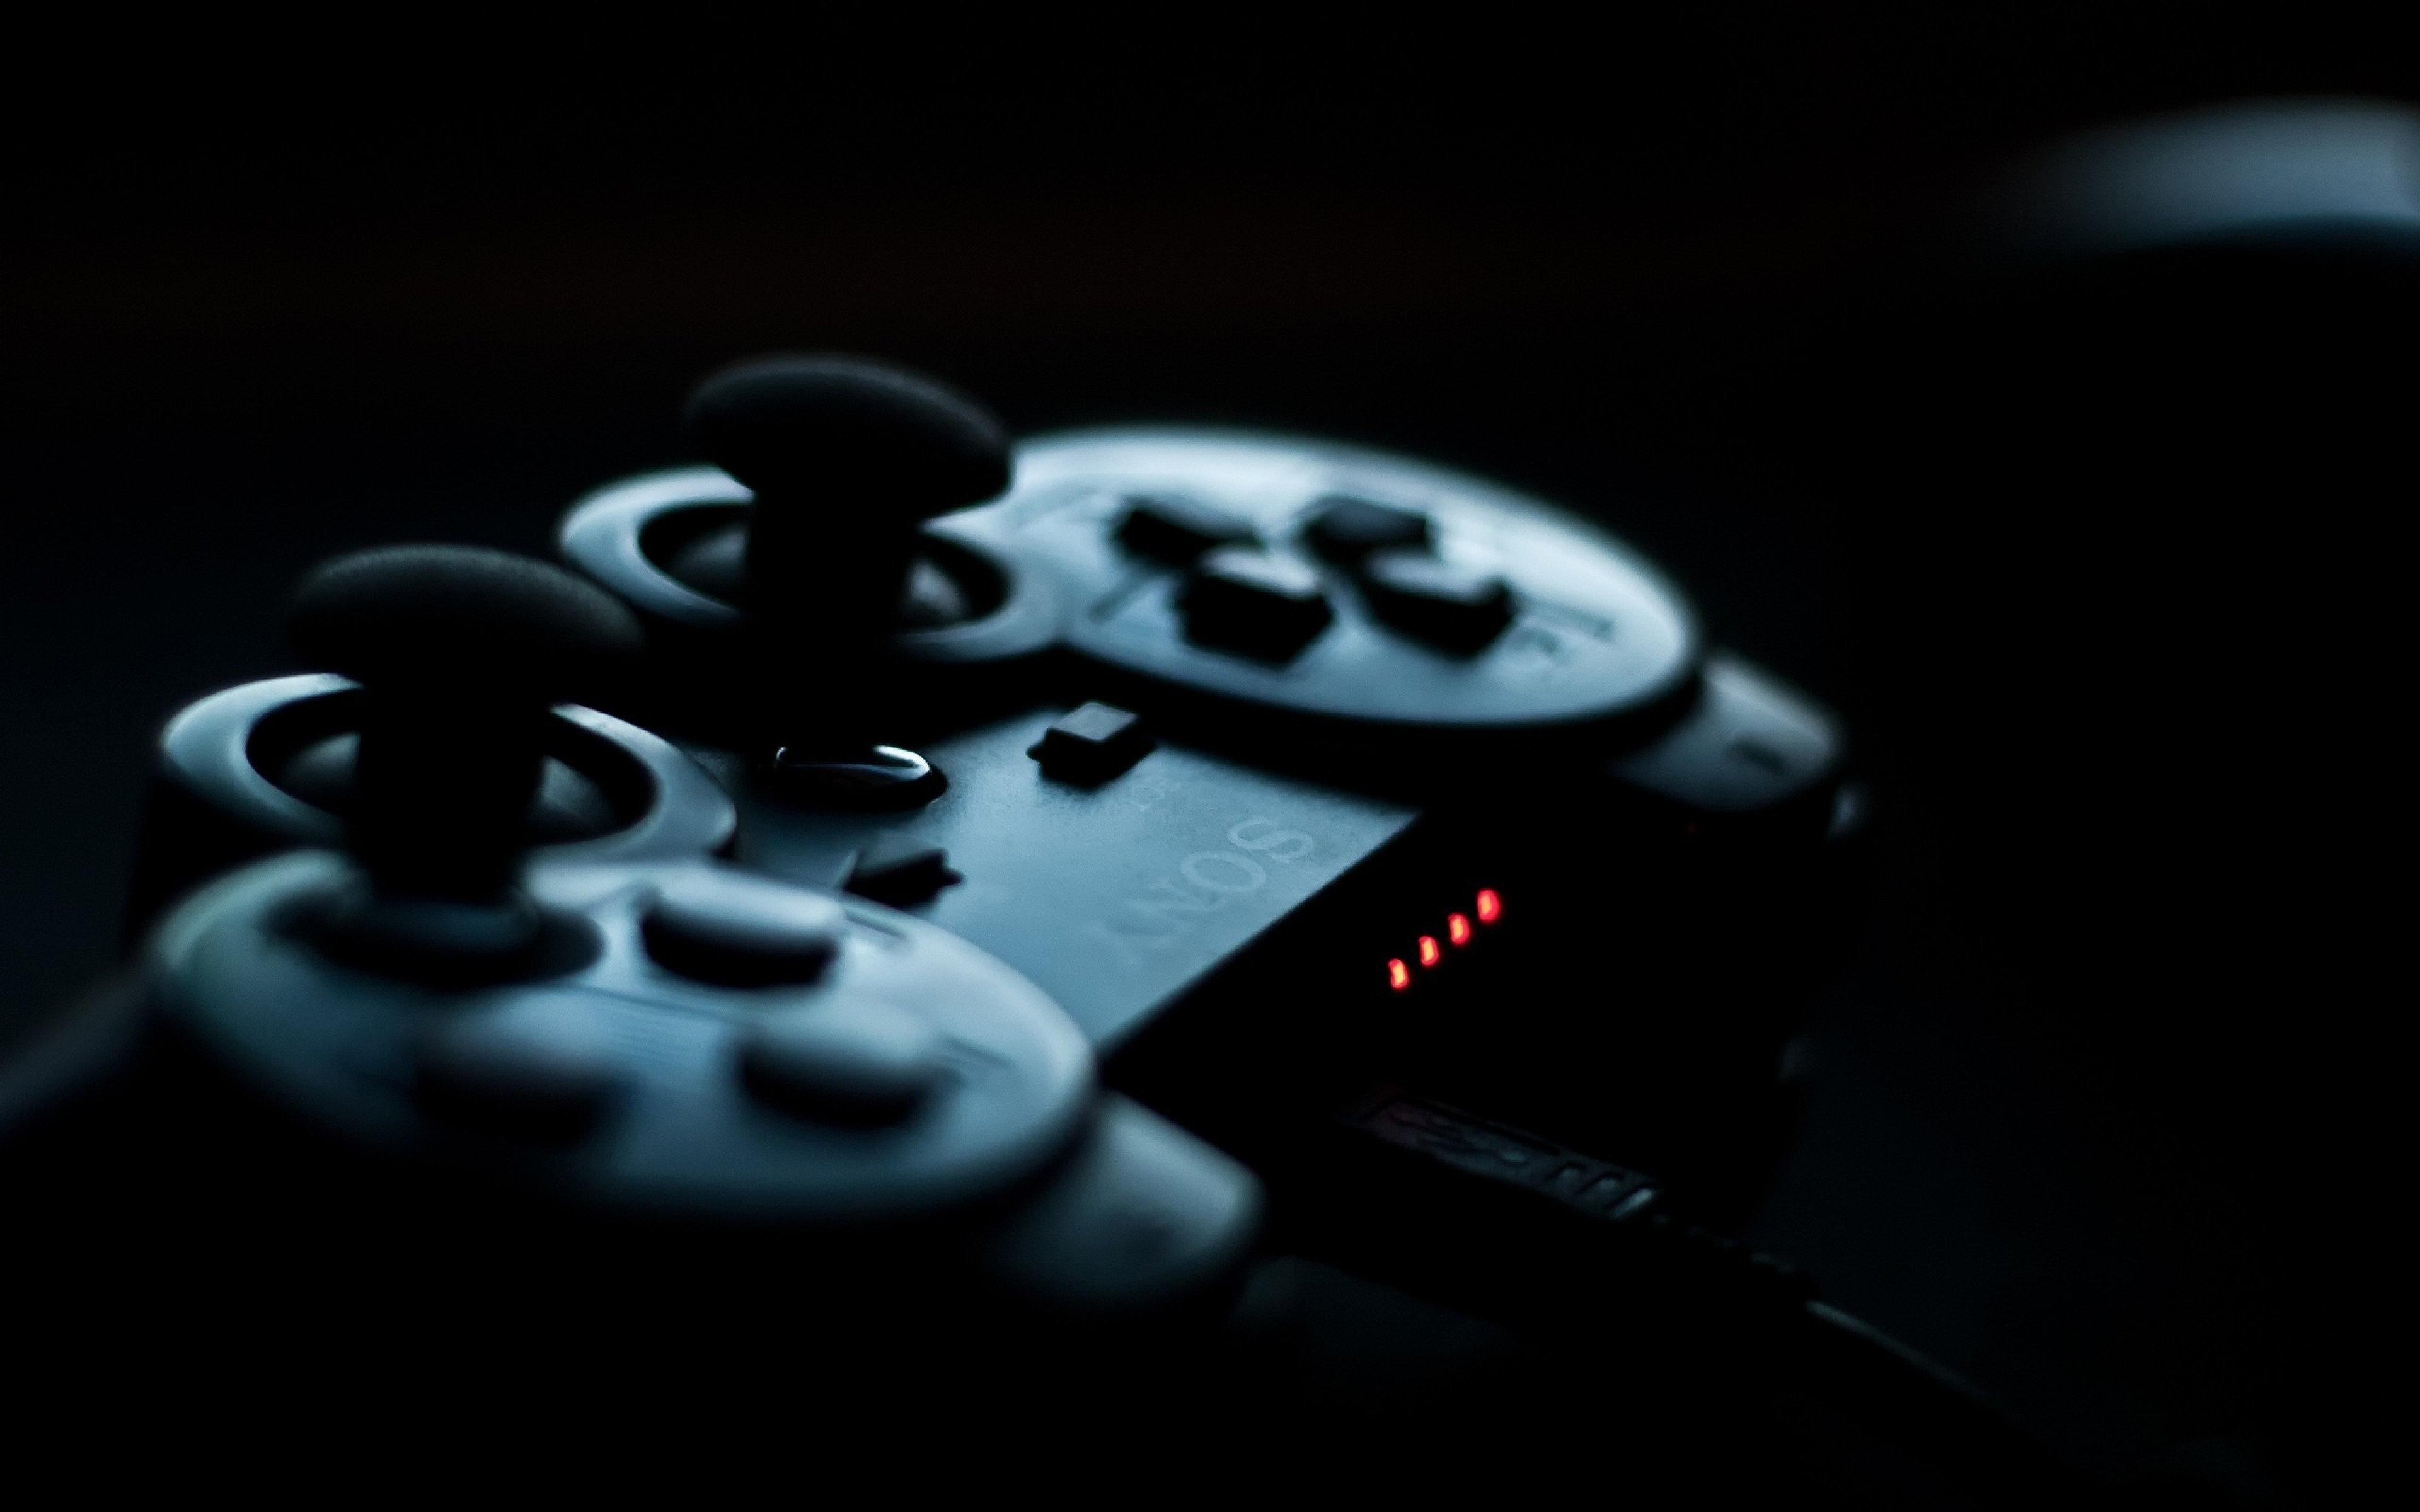 Gaming Wallpaper HD High Quality 4k Artwork Tablet Background 3840x2400